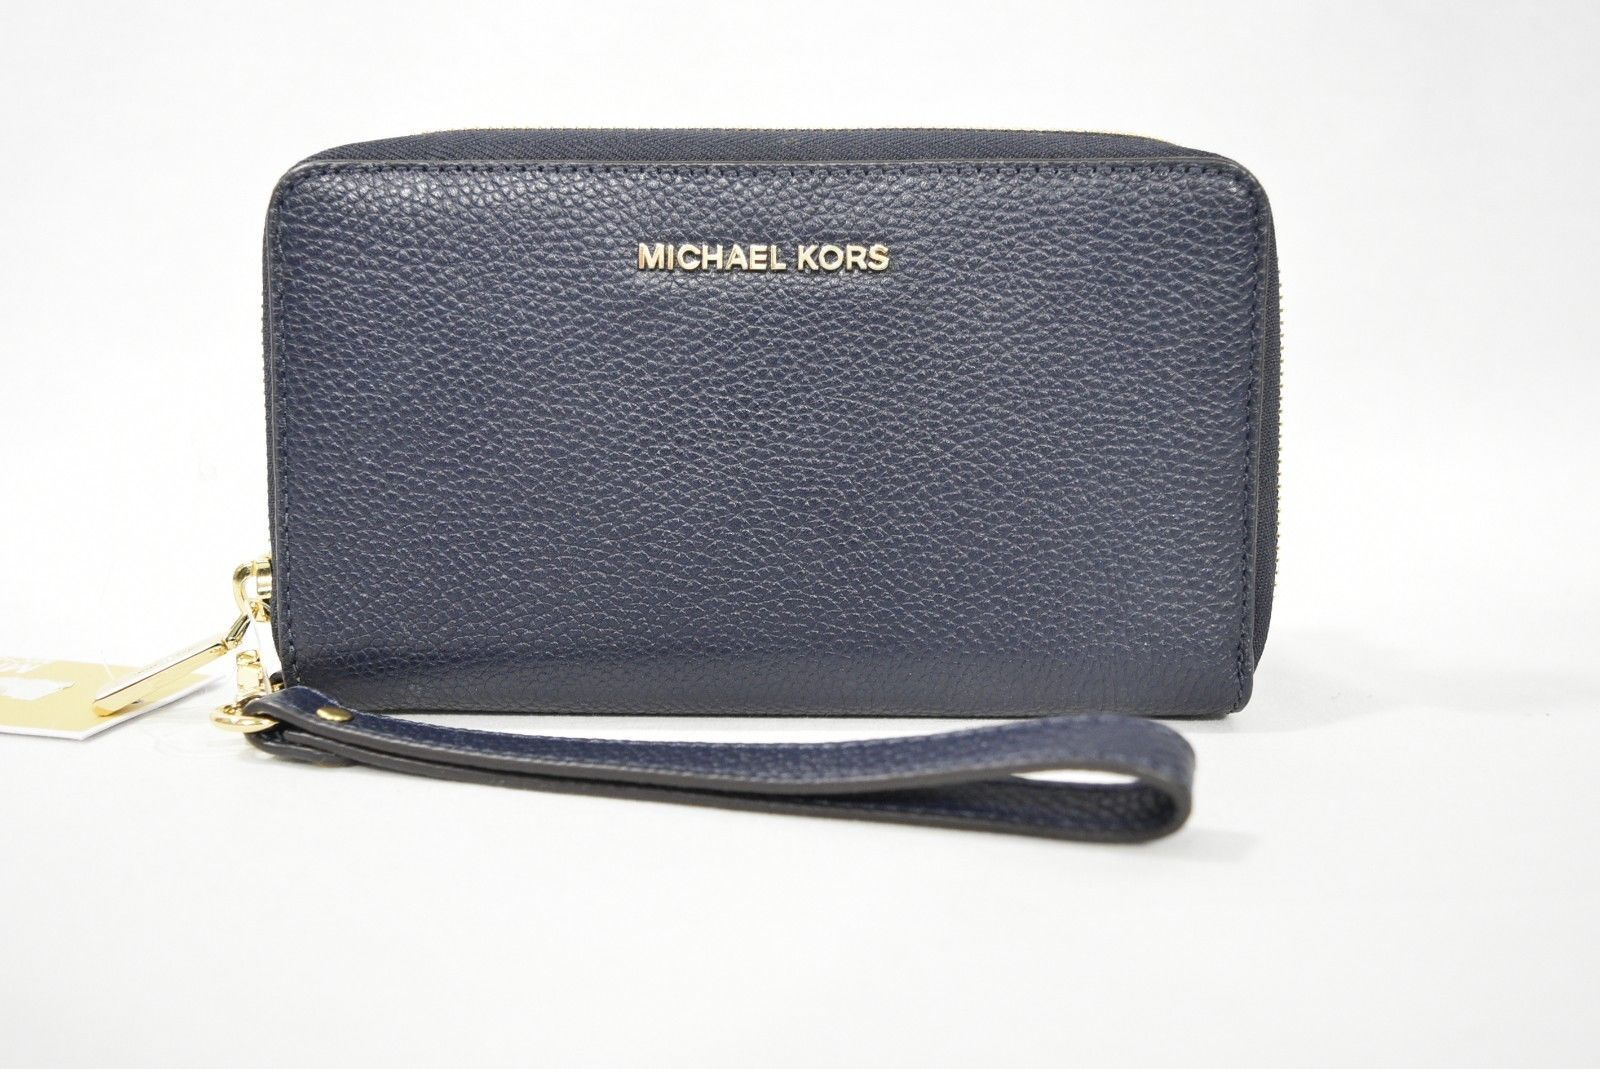 a8b6e448bedbdb Michael Kors Mercer Large Leather Smartphone Wristlet /Wallet in Admiral  Blue